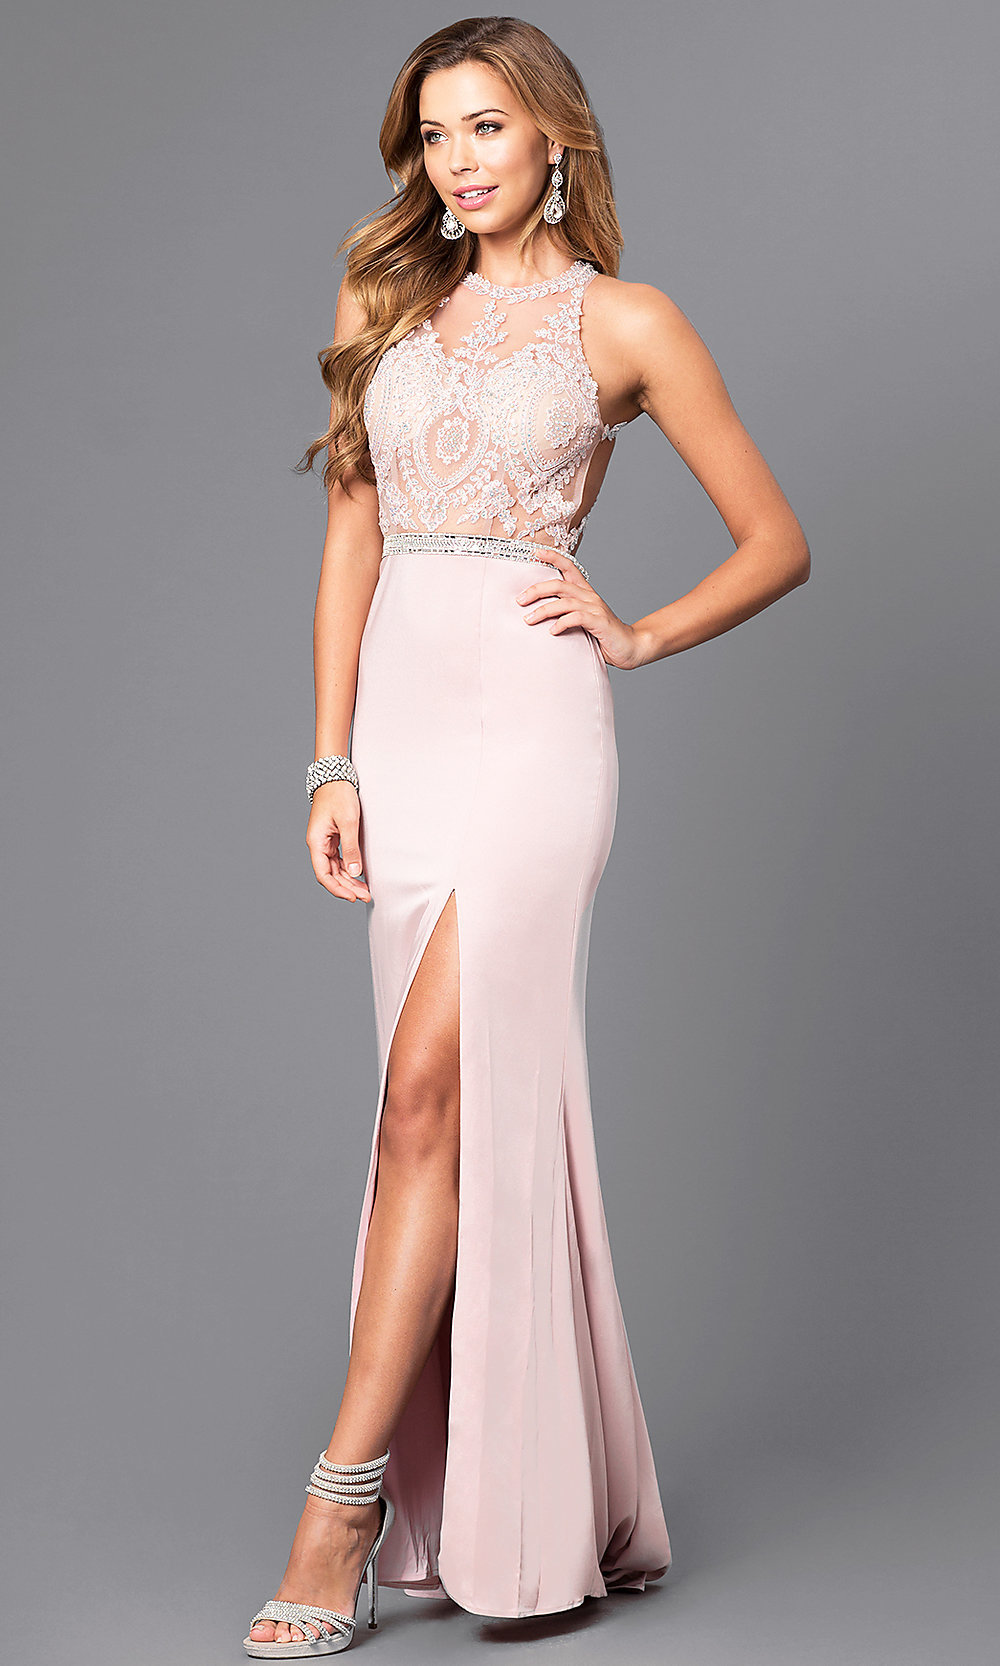 Shop short and long dresses for prom, designer prom gowns, cheap junior prom dresses, and prom shoes at PromGirl. Homecoming party dresses, graduation party dresses, plus-size formal dresses.